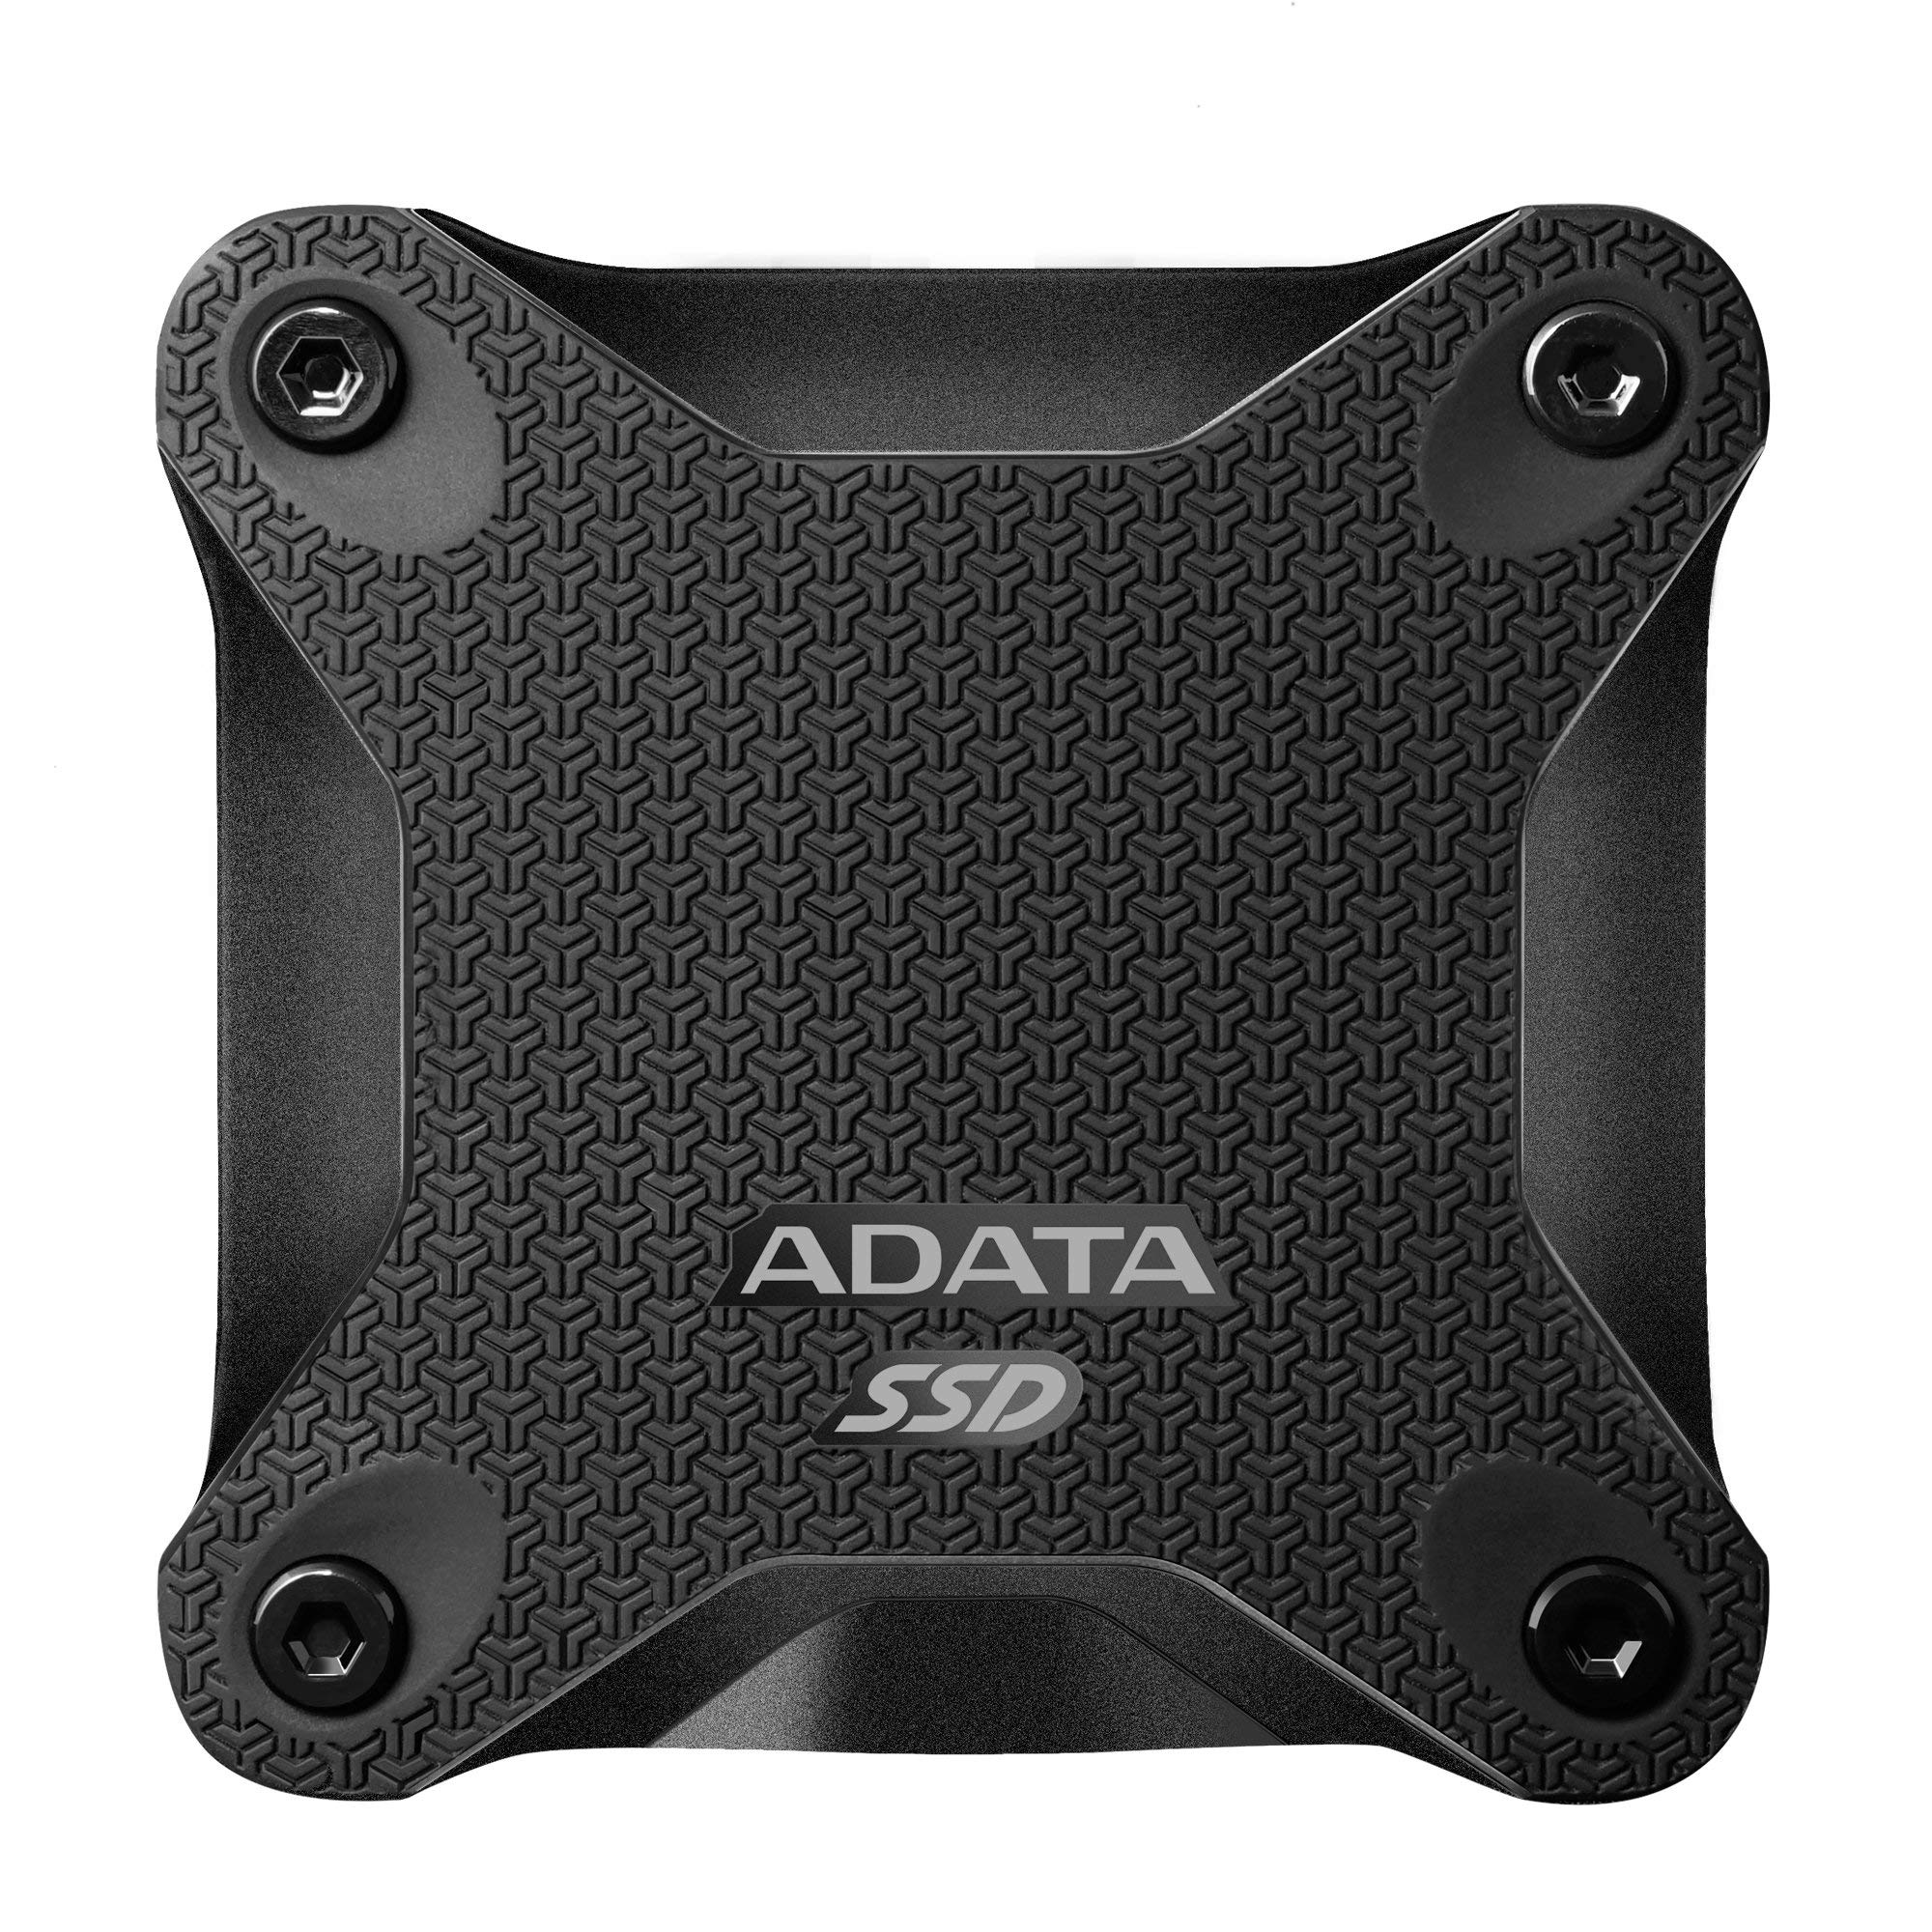 ADATA SD600 3D NAND 512GB USB3.1 Ultra-Speed External Solid State Drive Read up to 440 MB/s Black (ASD600-512GU31-CBK) (Renewed)